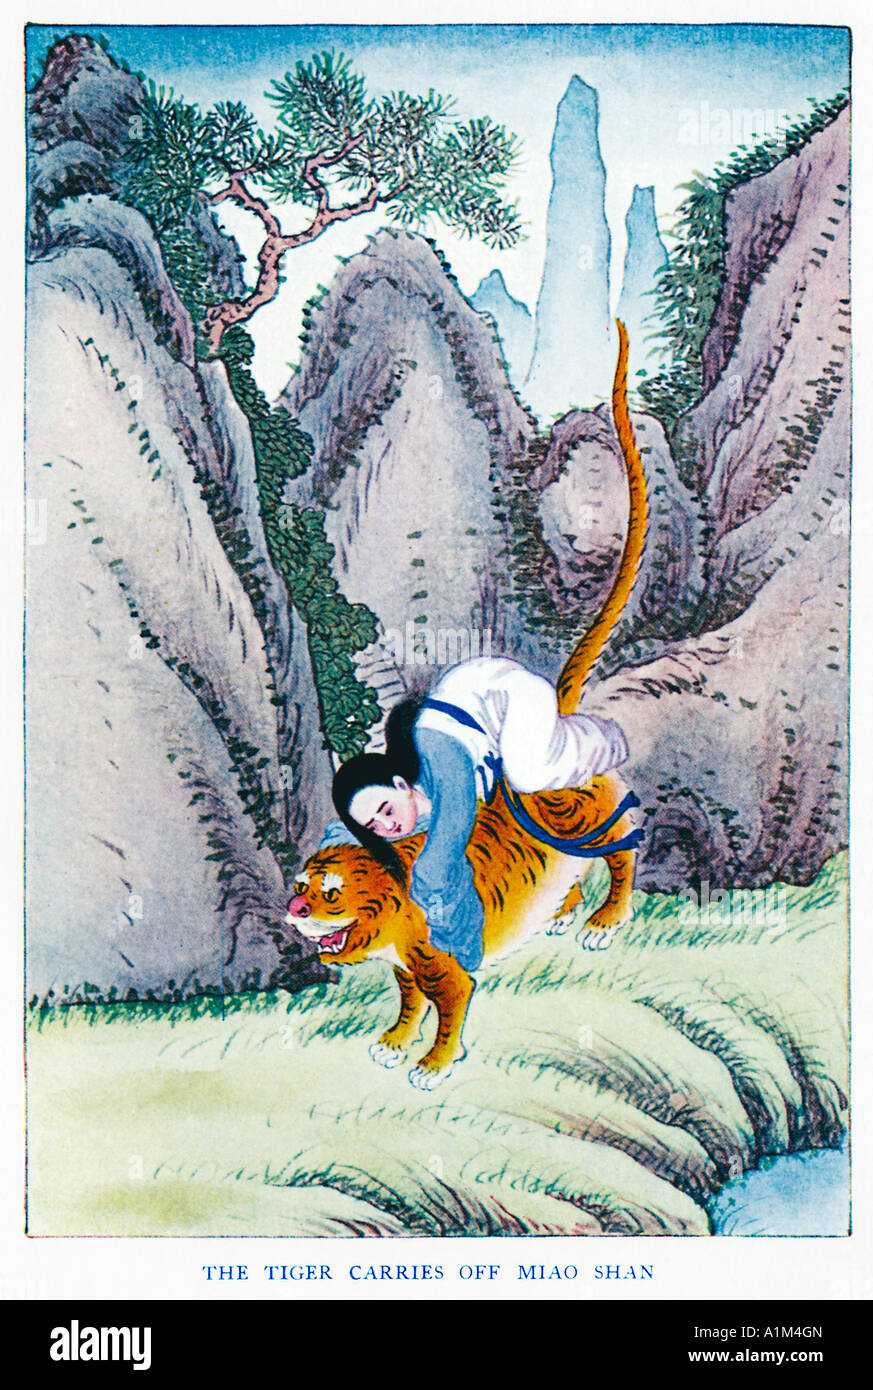 The Tiger Carries Off Miao Shan 1920s illustration by a Chinese artist from a book on Myths and Legends of China - Stock Image